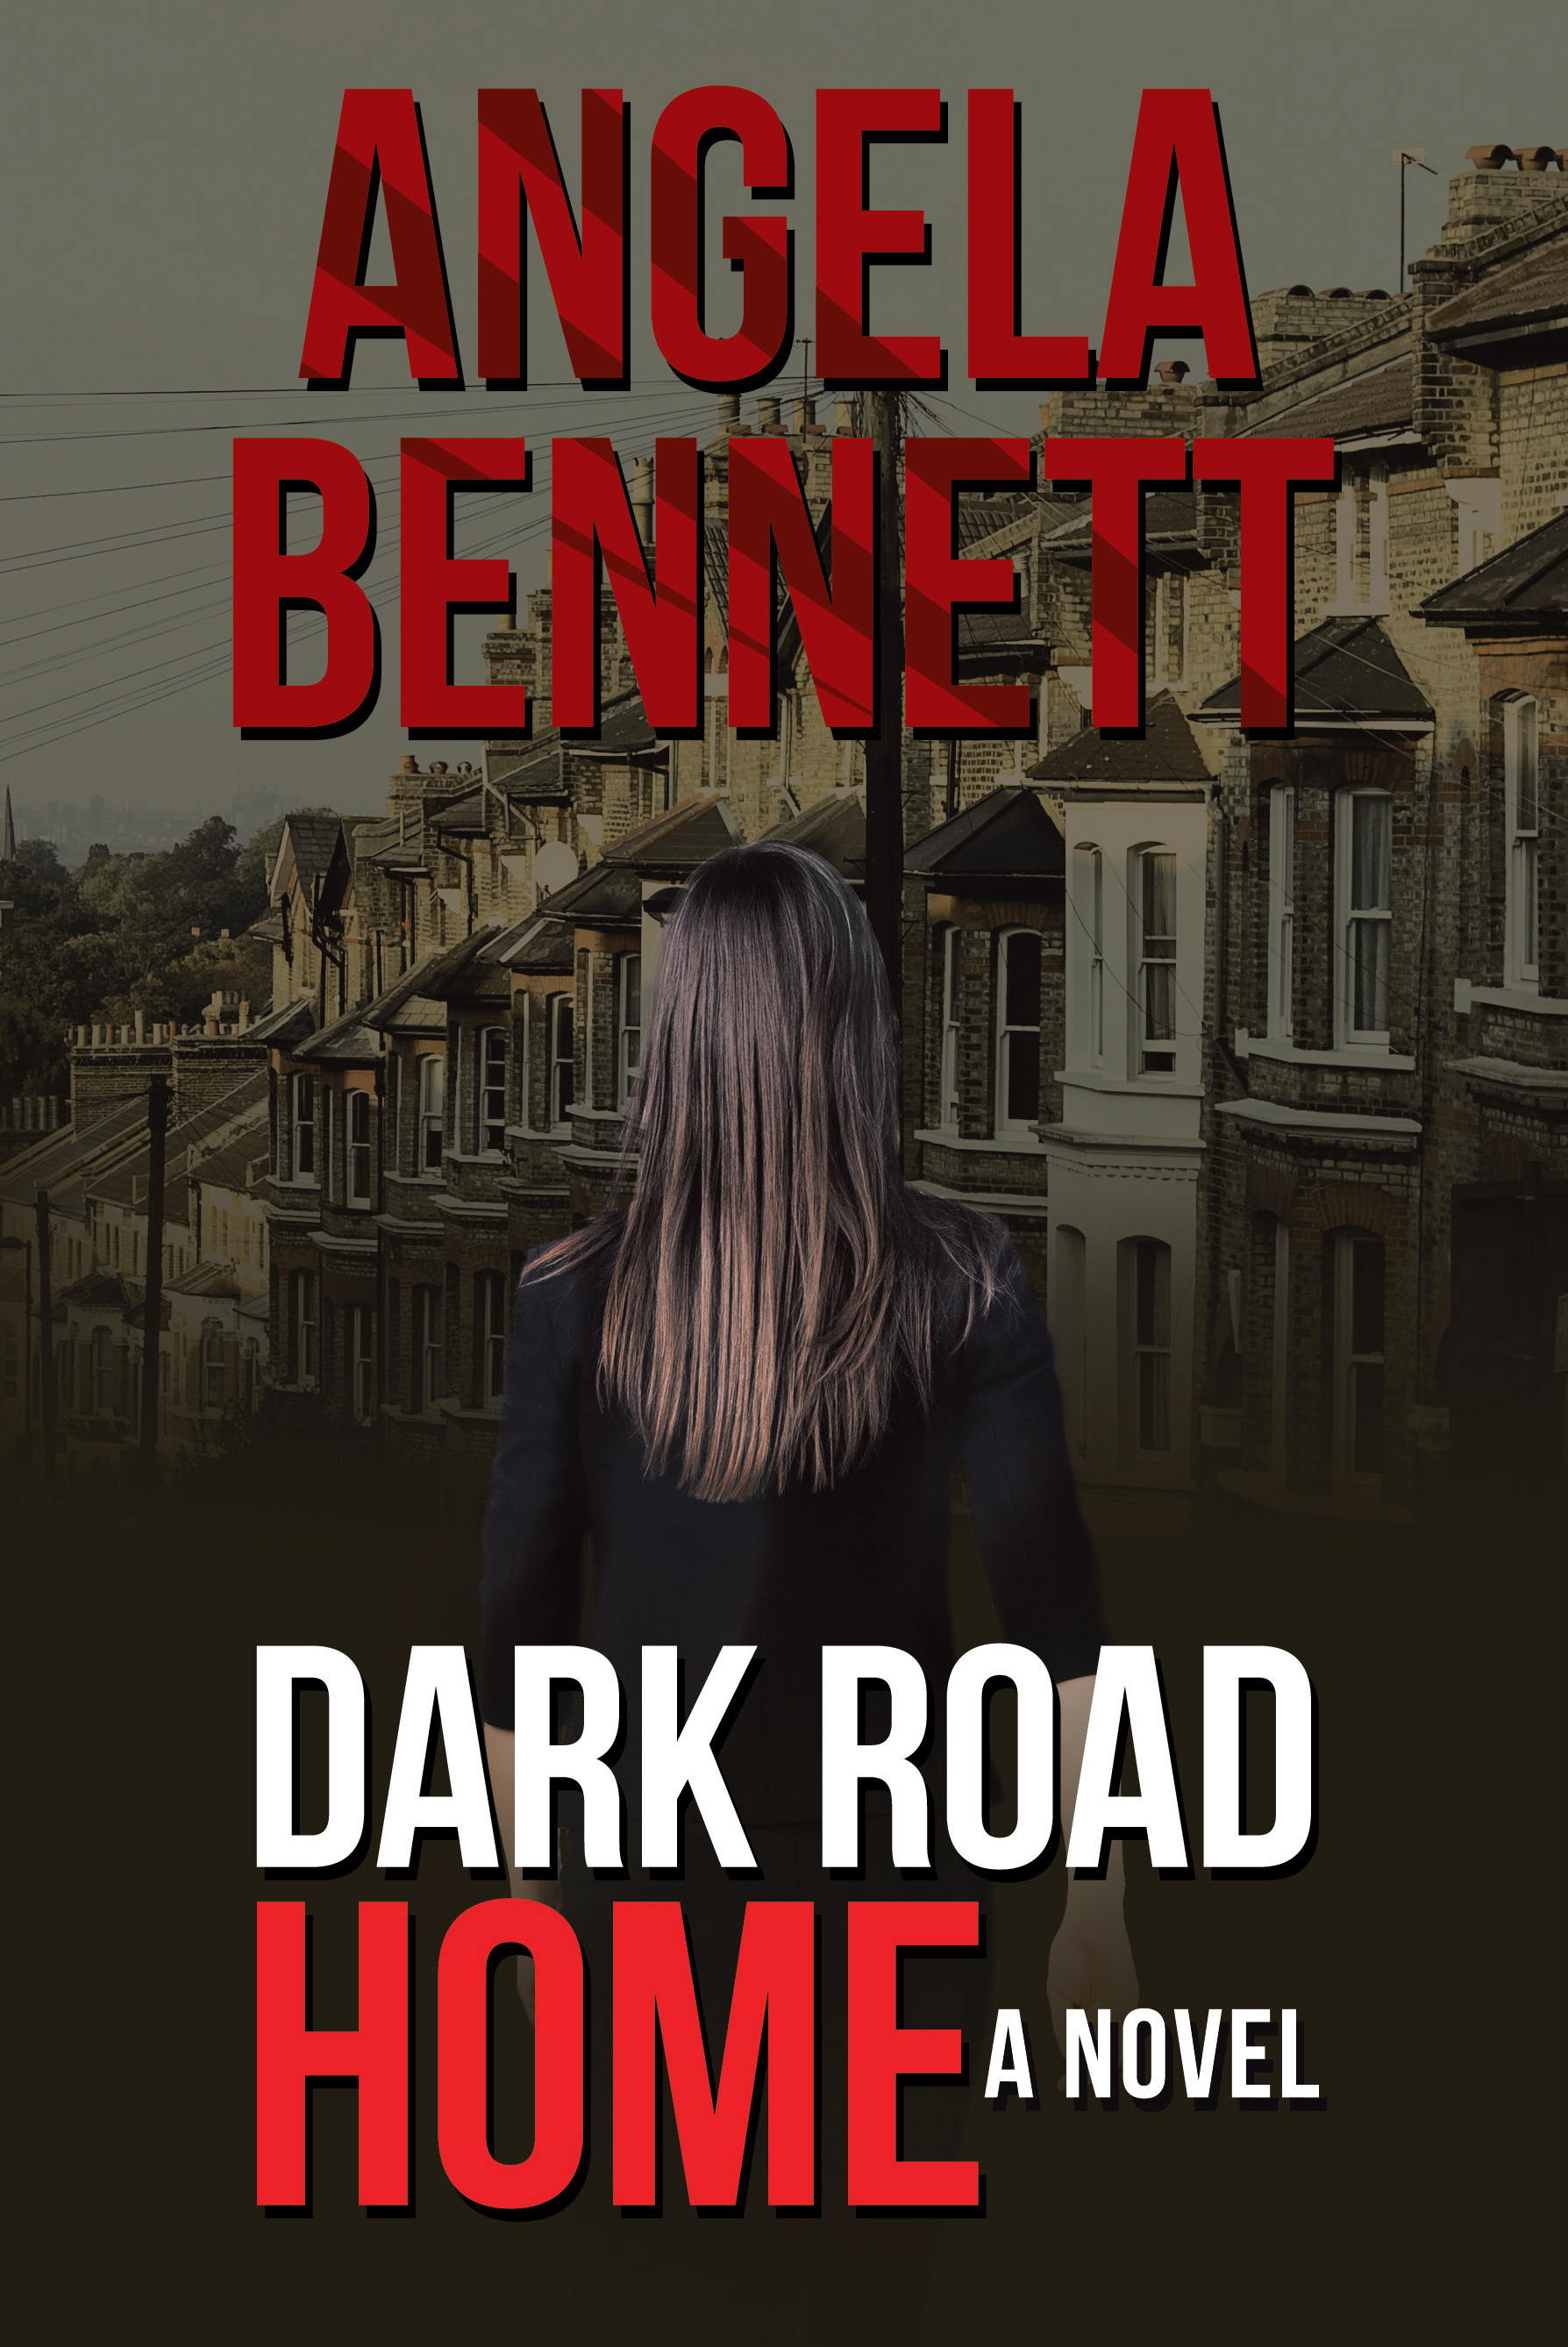 Dark Road Home by Angela Bennett Book Cover